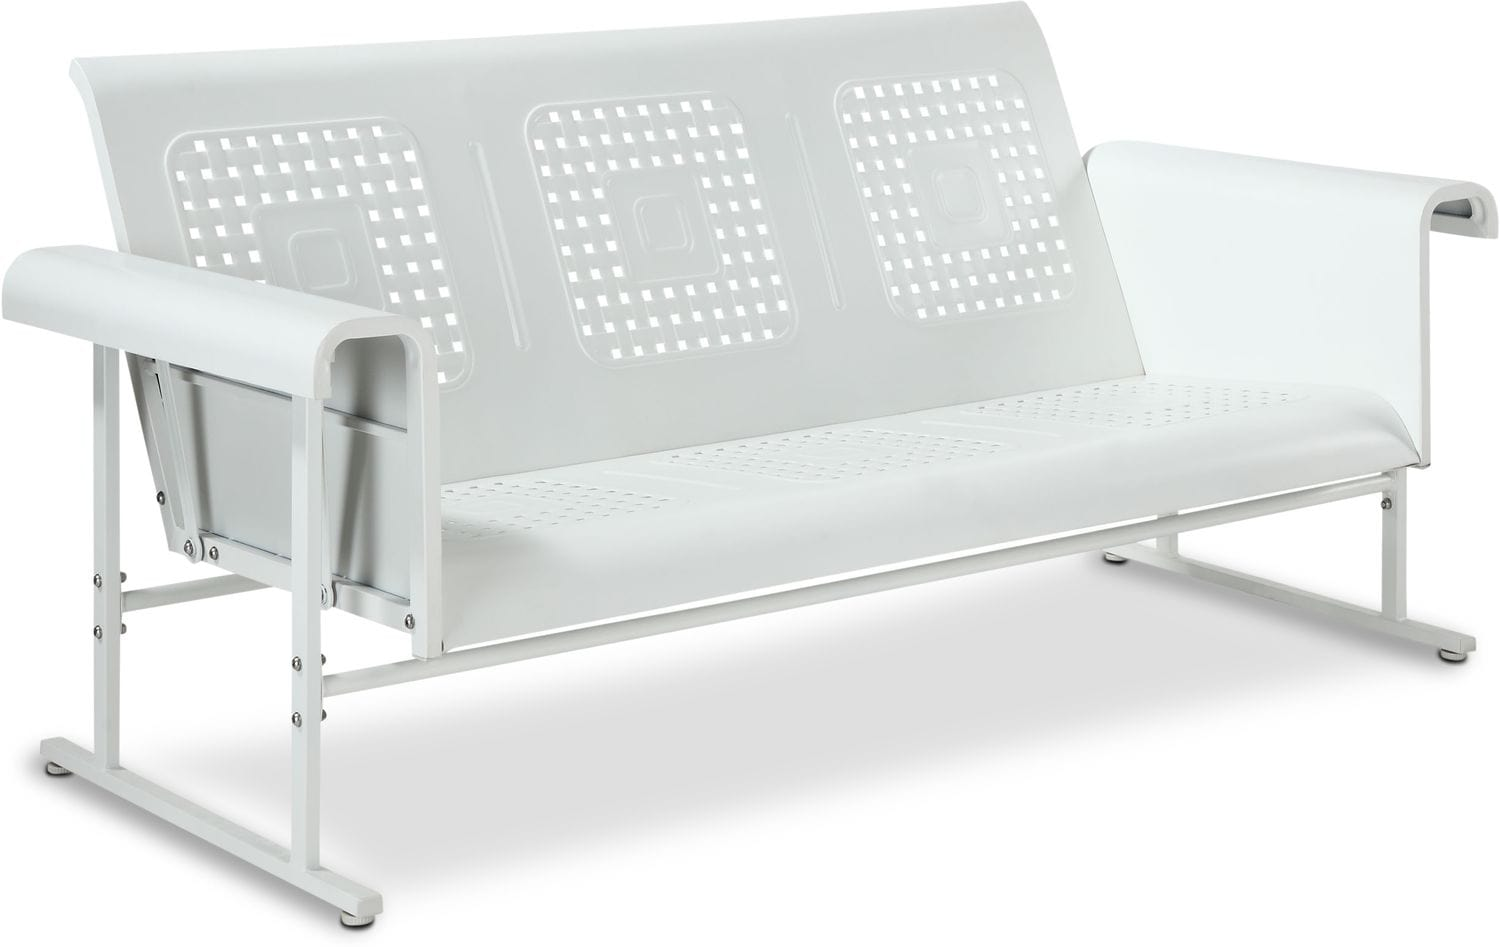 Calhoun Outdoor Glider Sofa | Value City Furniture and Mattresses